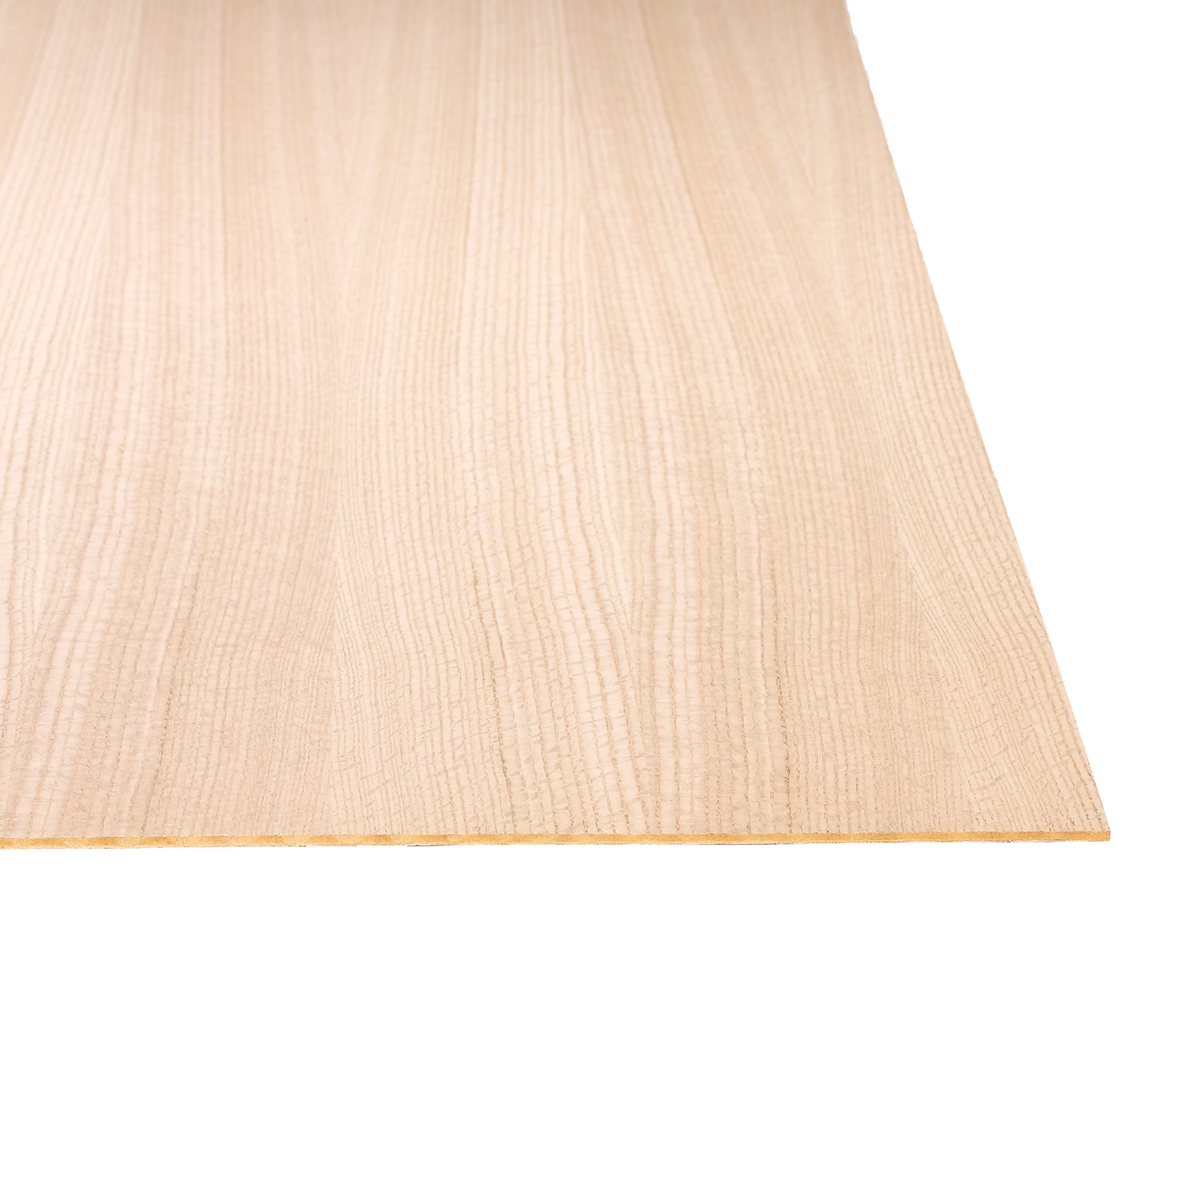 Quarter Sawn Red Oak 4'x8' Plywood G2S Made in USA #AE6B1D 1200x1200